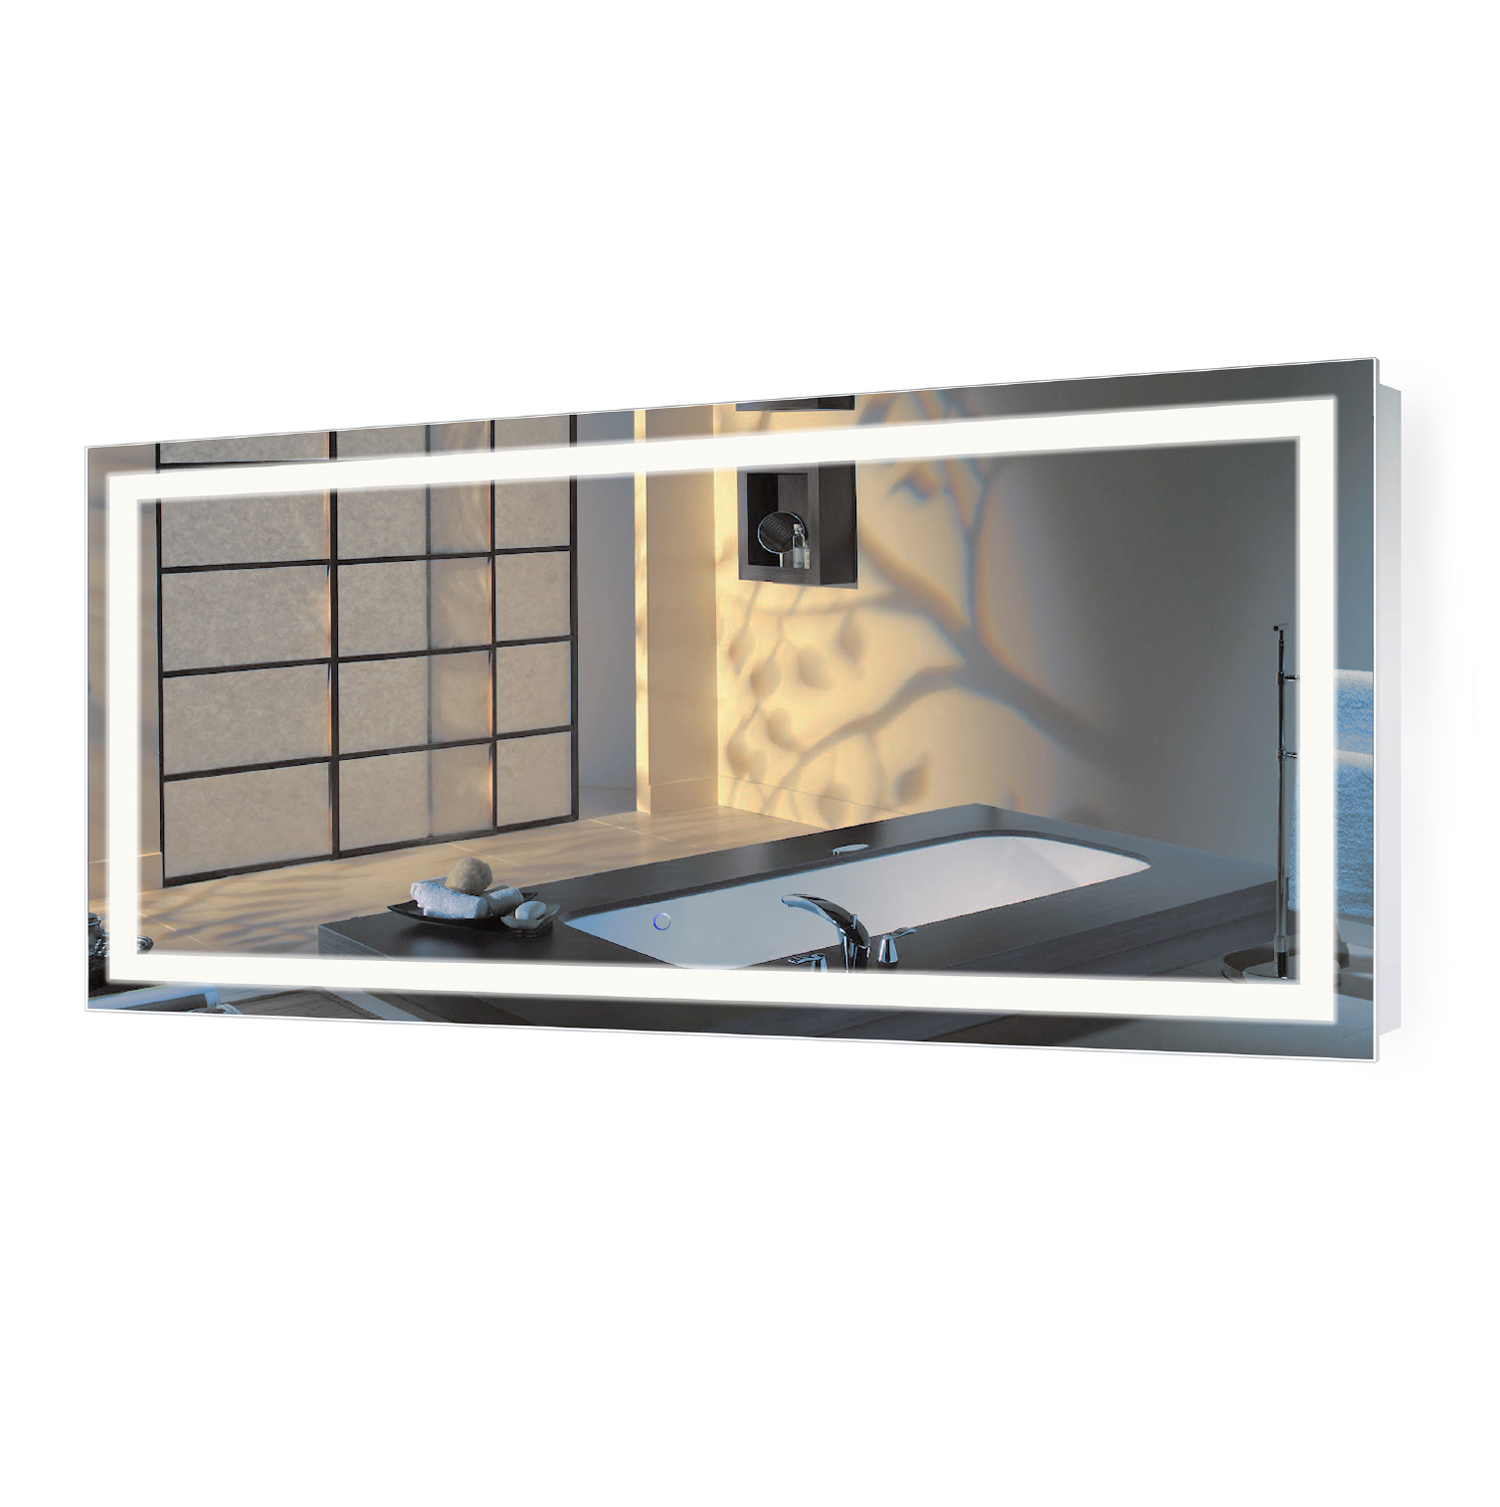 Lighted Bathroom Wall Mirror Large: Large 60 Inch X 30 Inch LED Bathroom Mirror Lighted Vanity